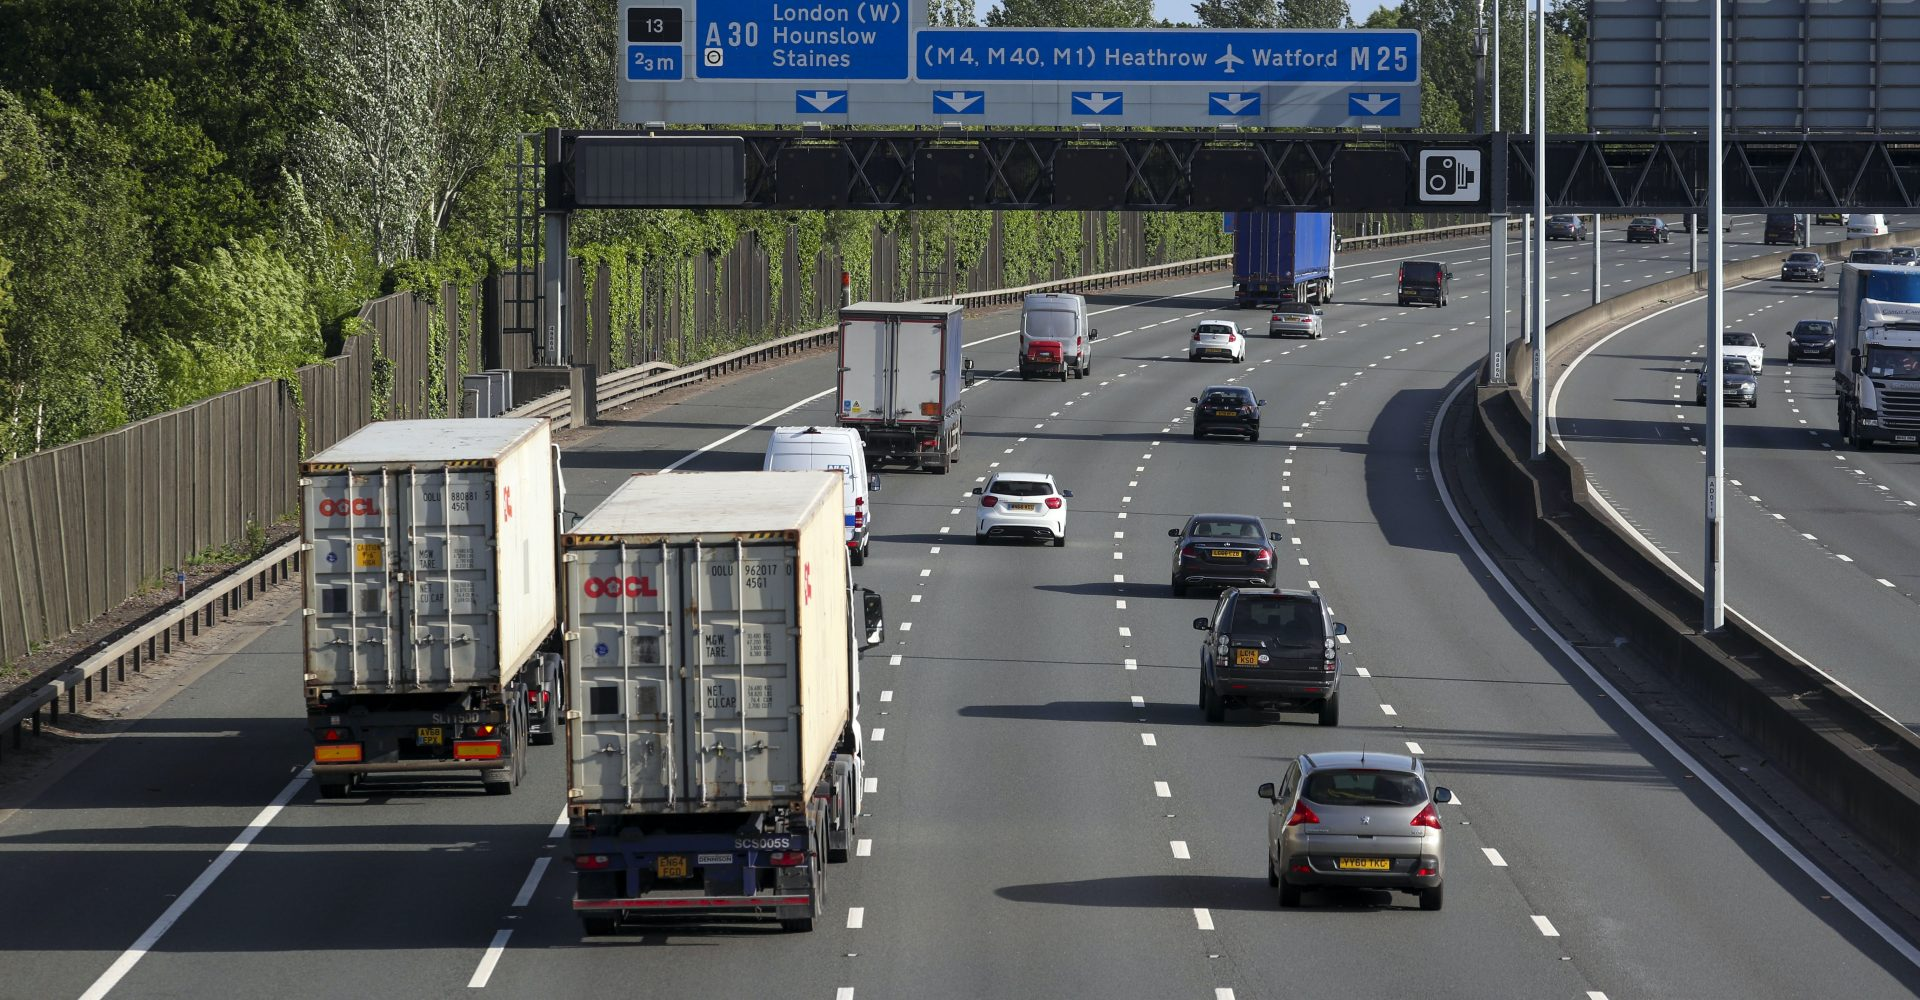 Fuel duty revenue down by £2.4bn in April and May